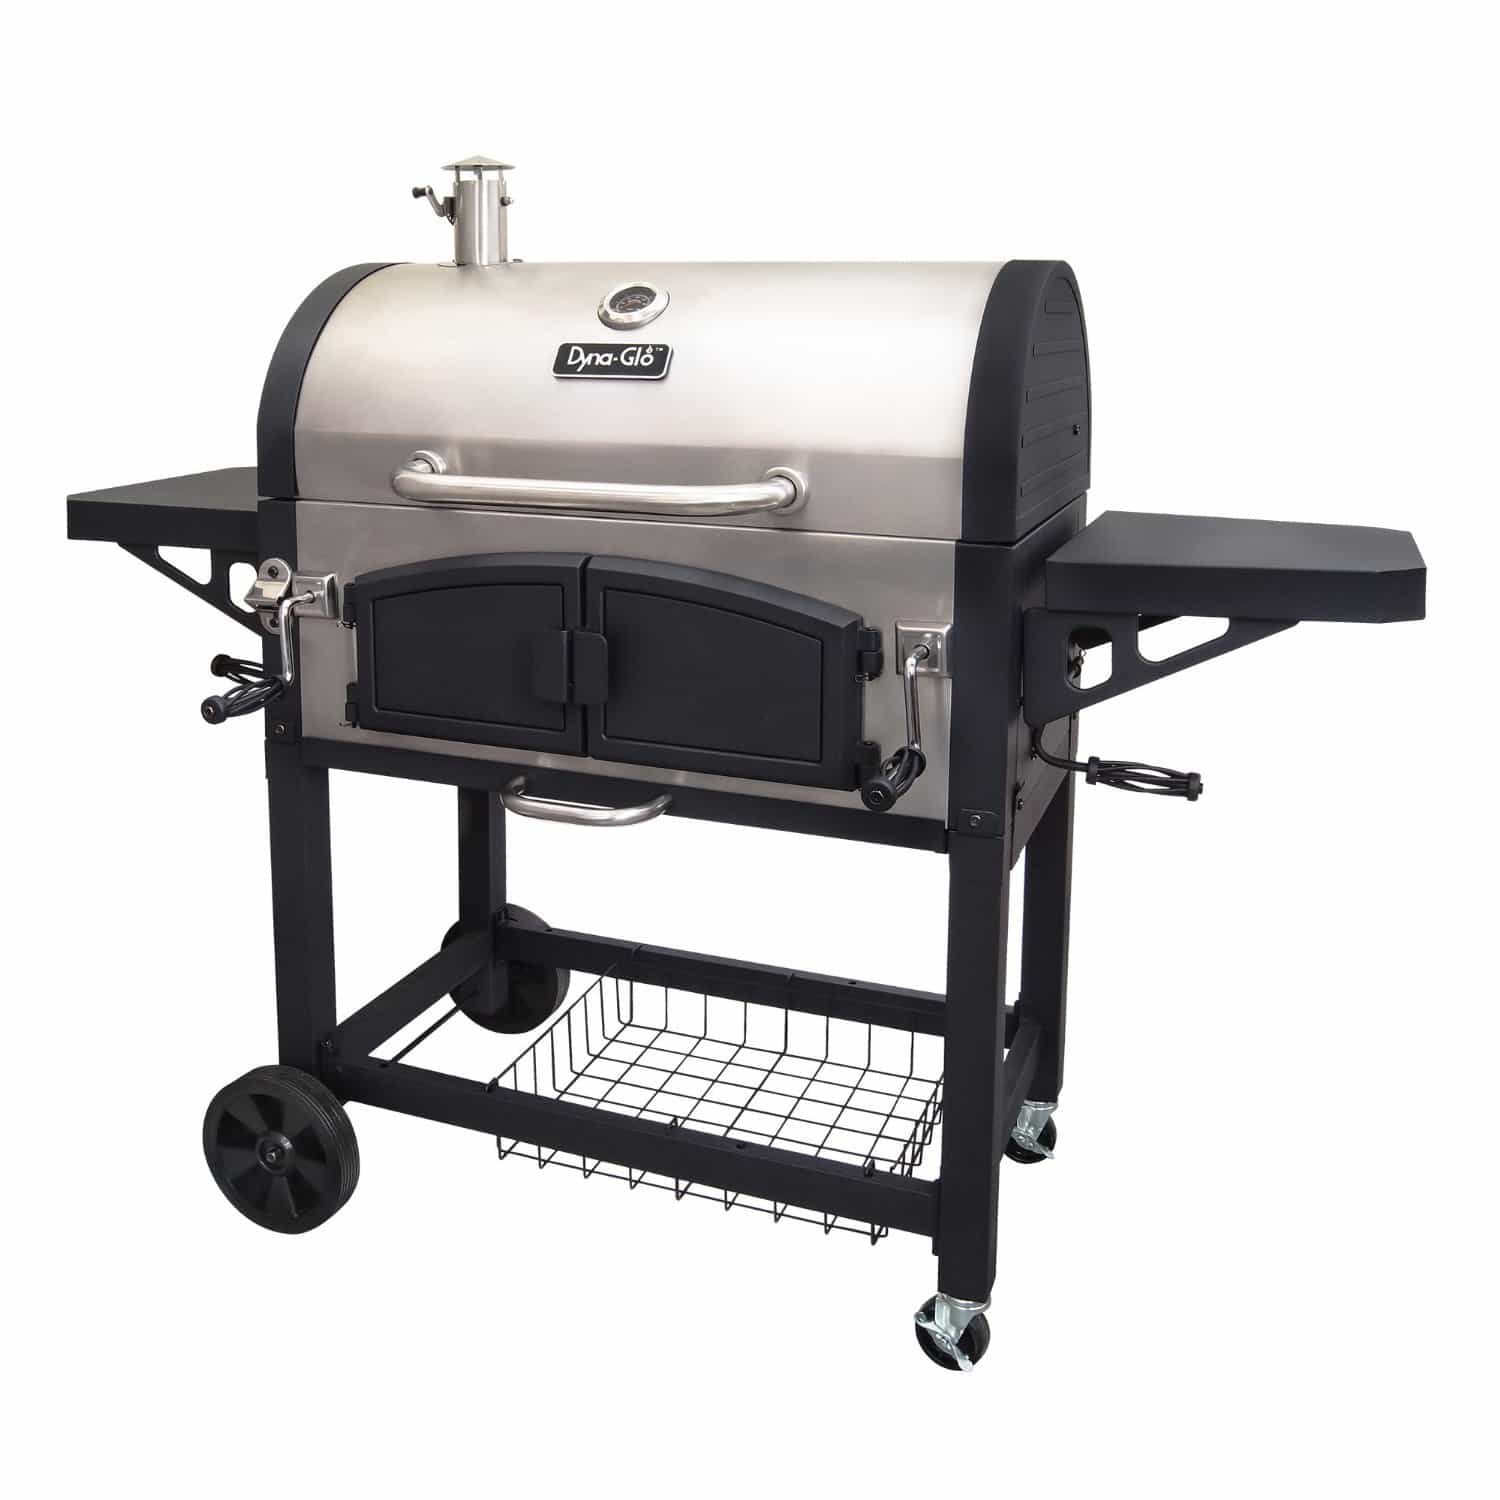 Best Charcoal Grill For 2017, Best Charcoal Grill With Cooking Flexibility